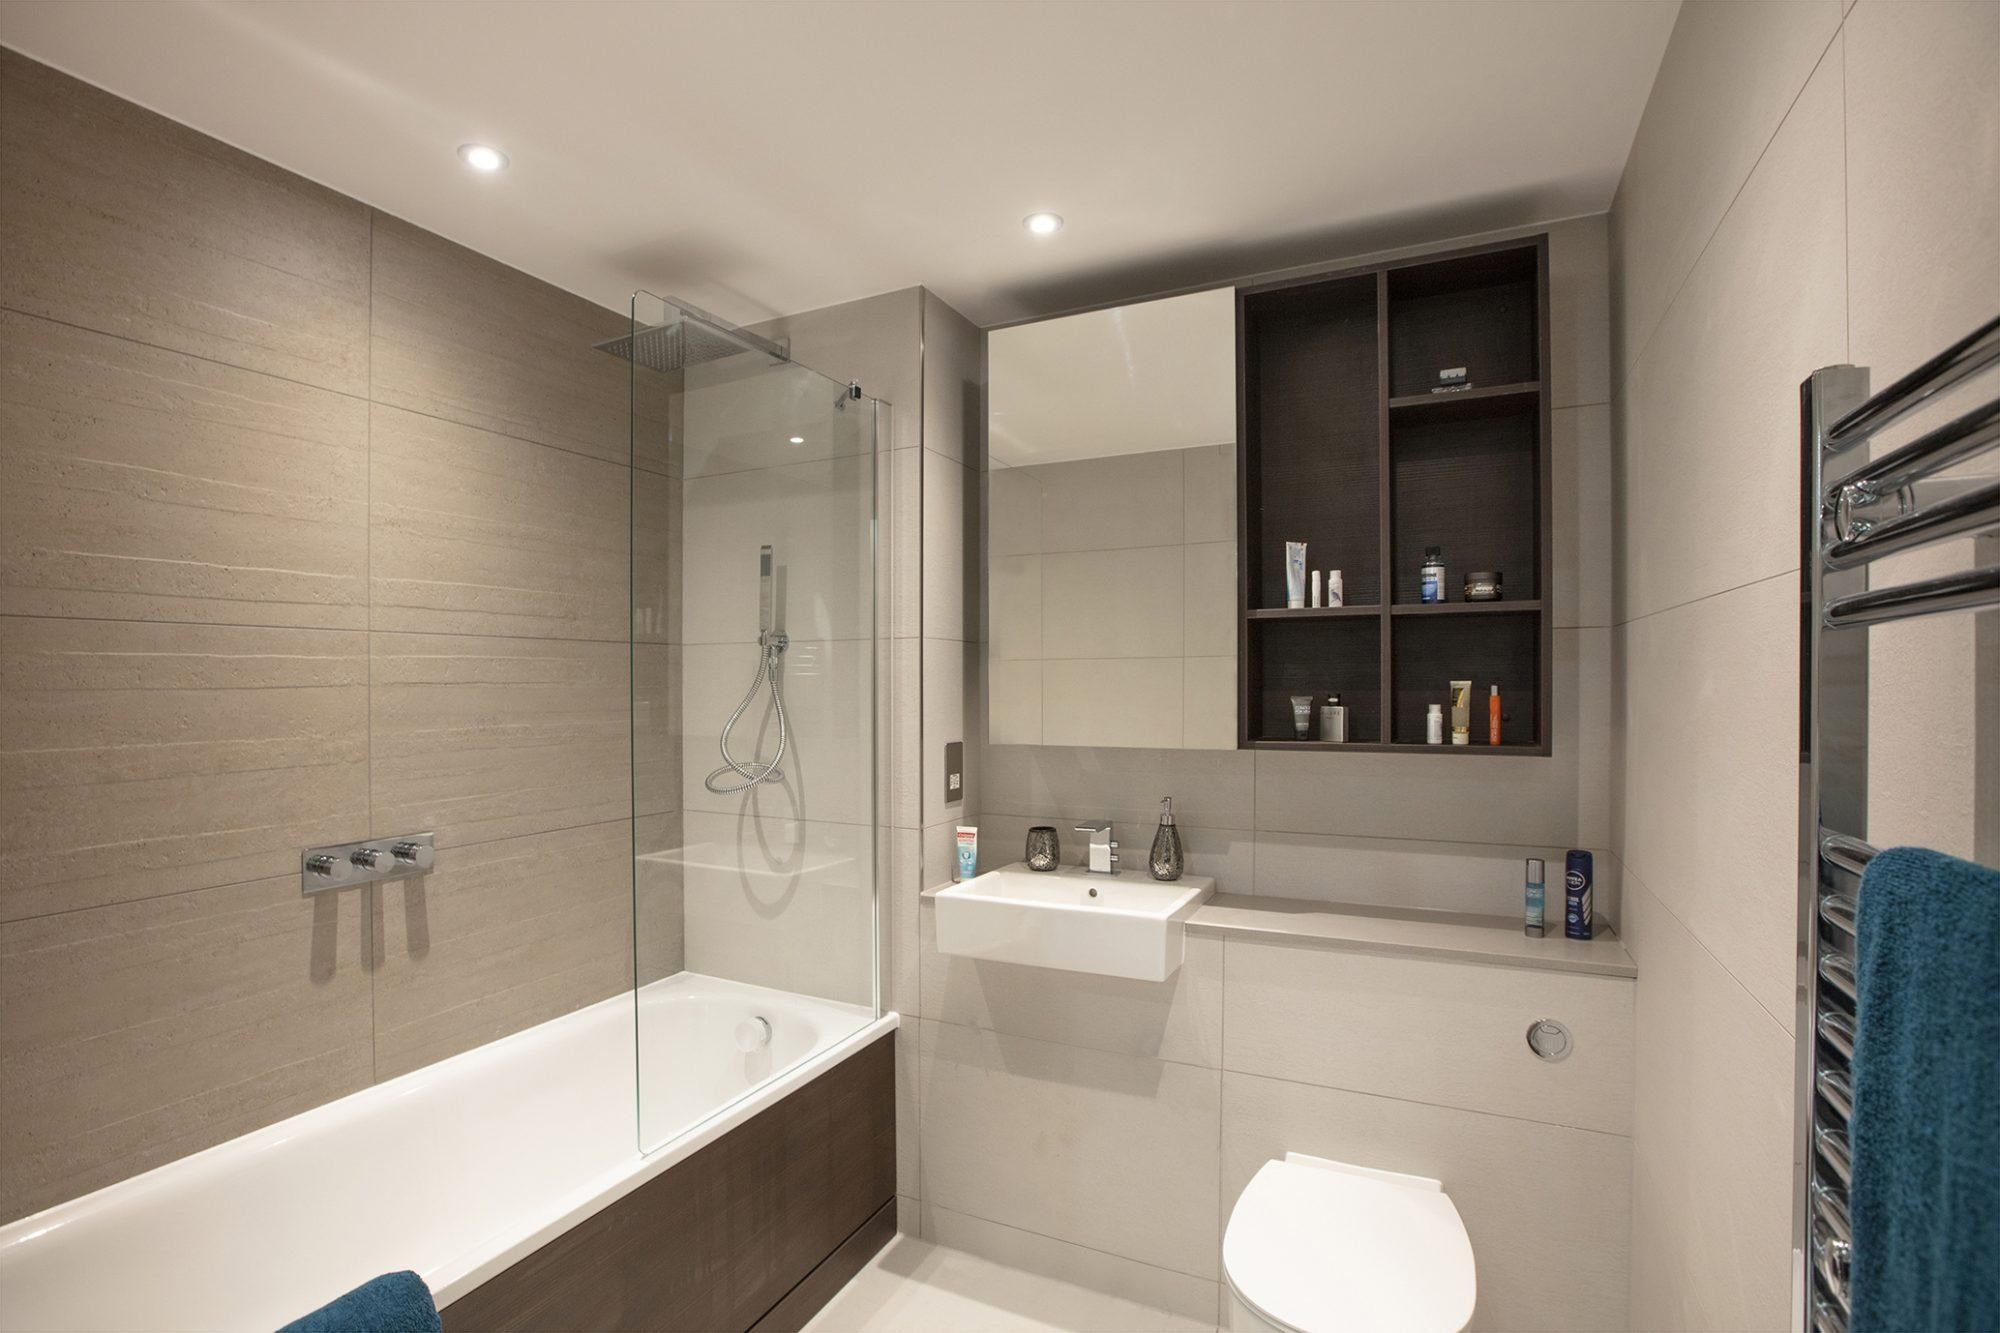 Wates awards £3m contract for steel-framed bathroom pods